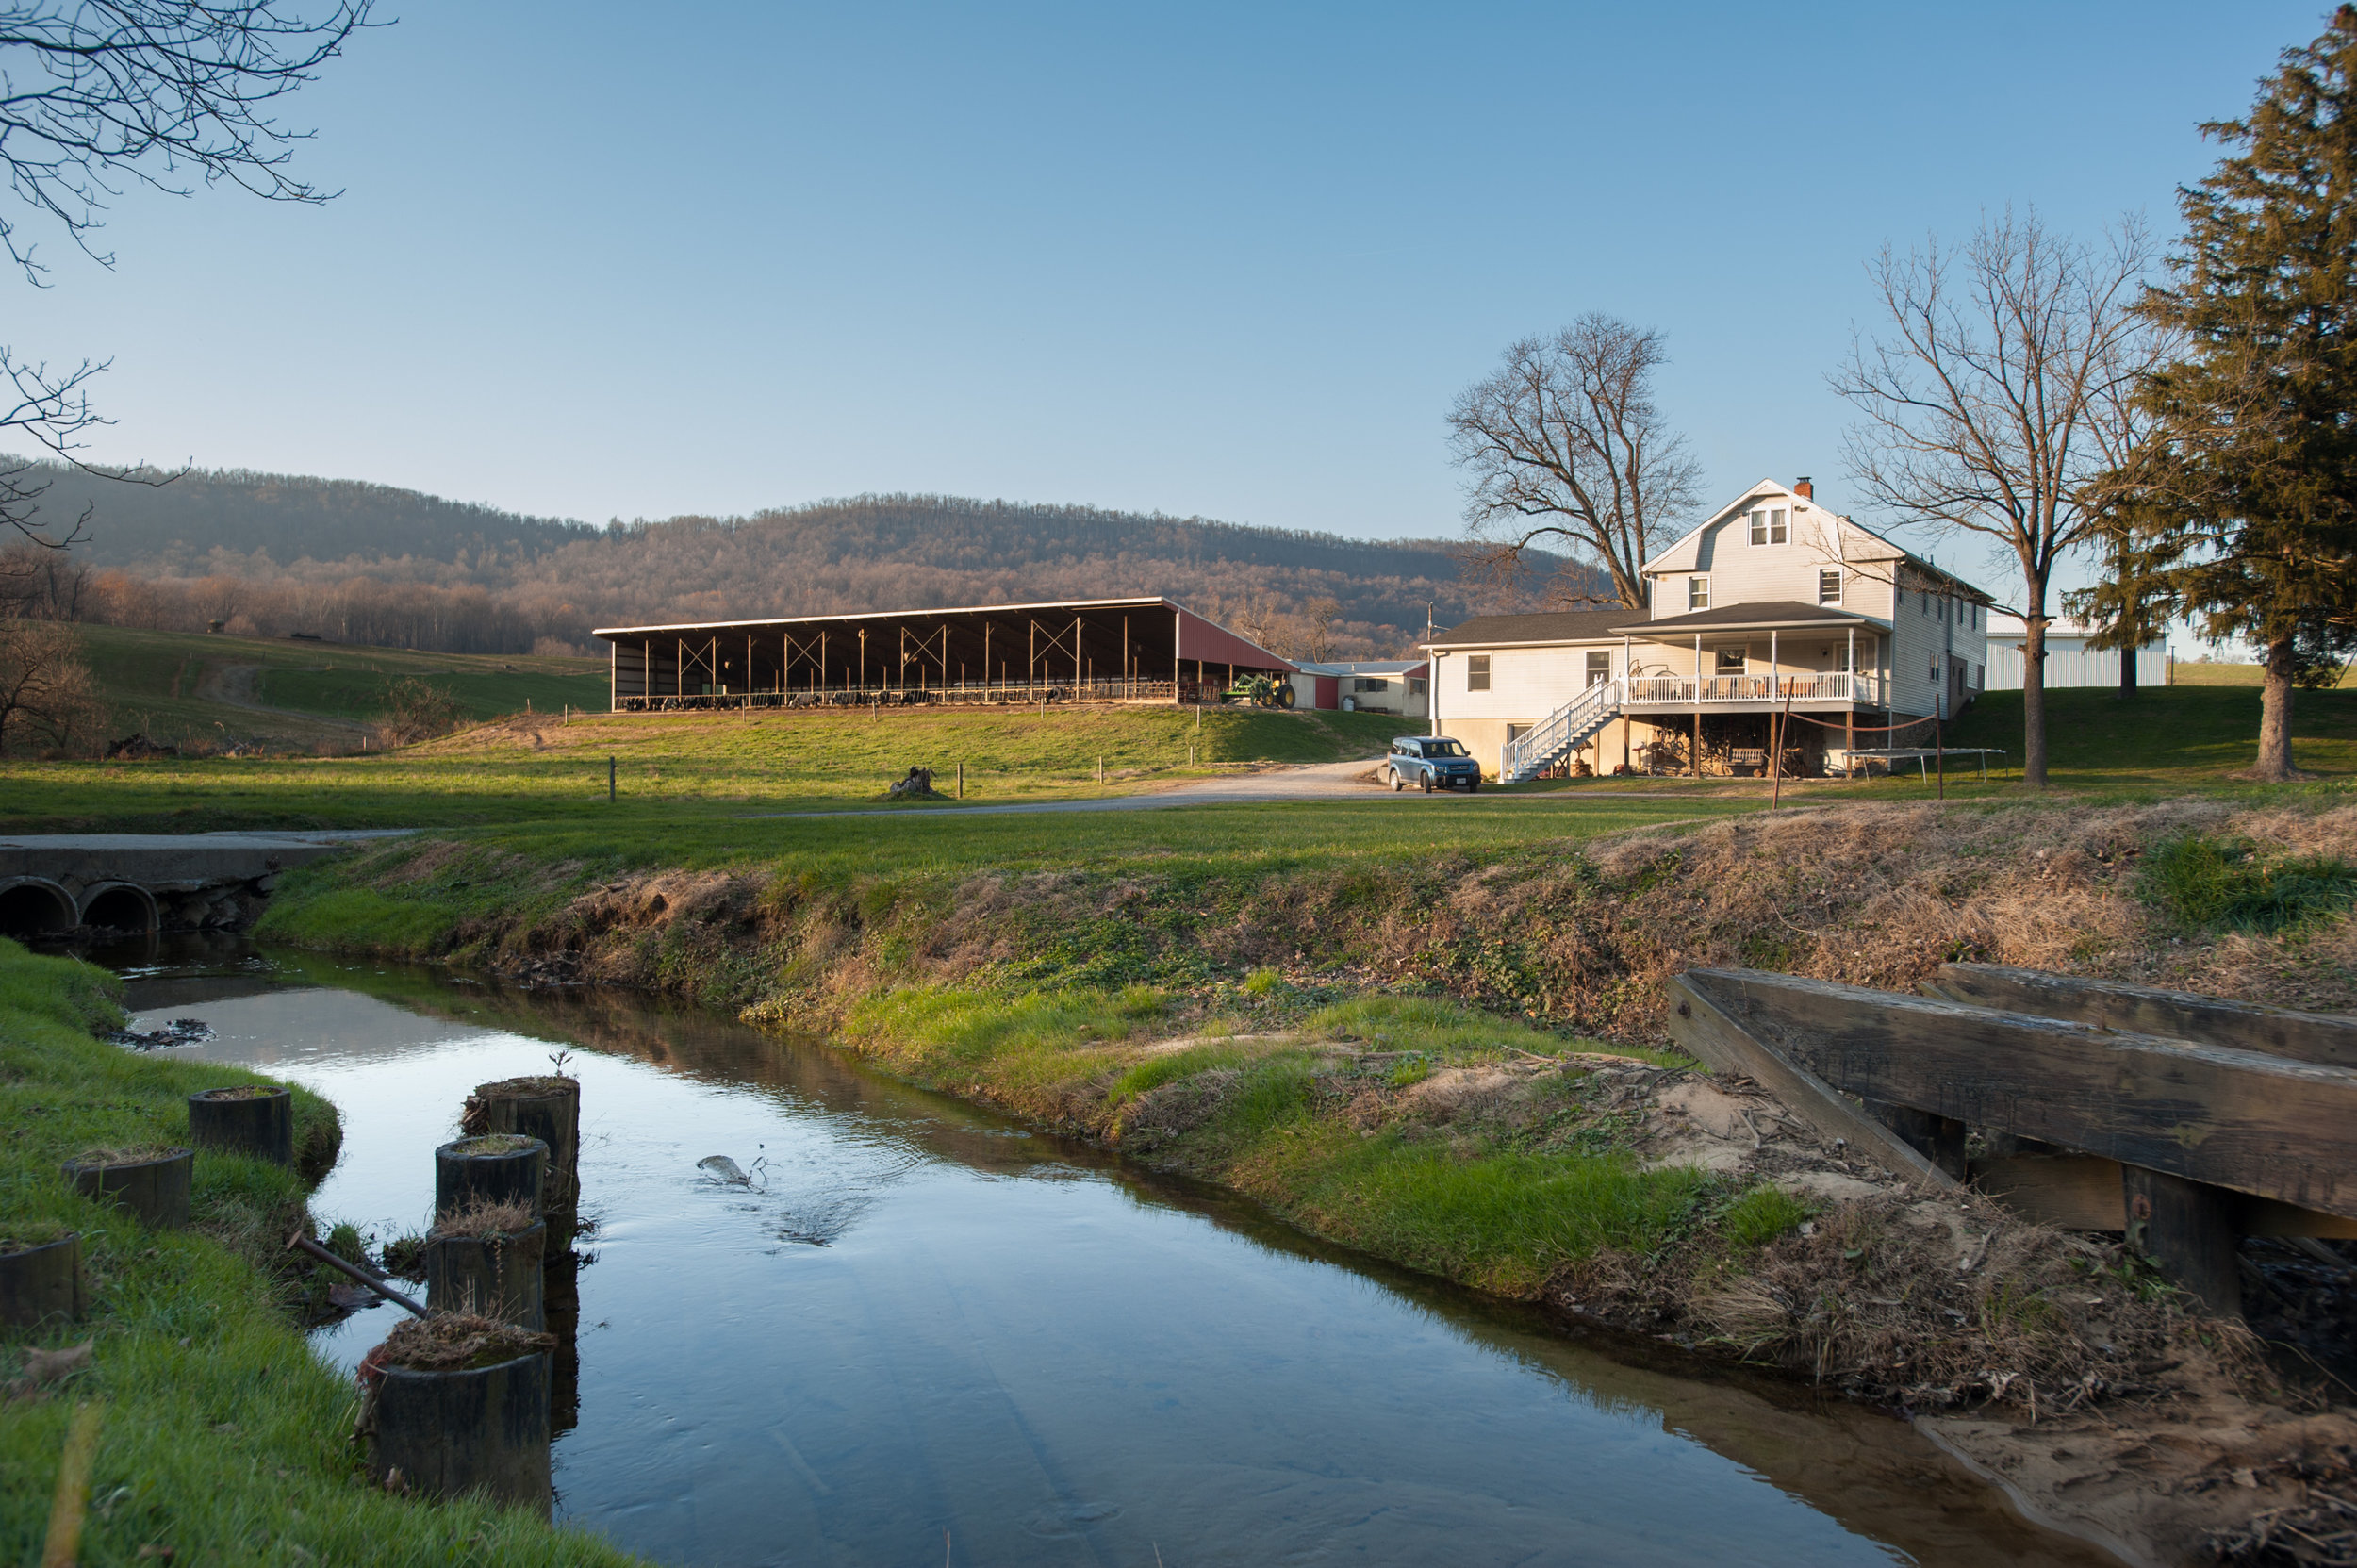 Image of Peace Hollow Farm, Knoxville, MD. Photo credit Edwin Remsberg